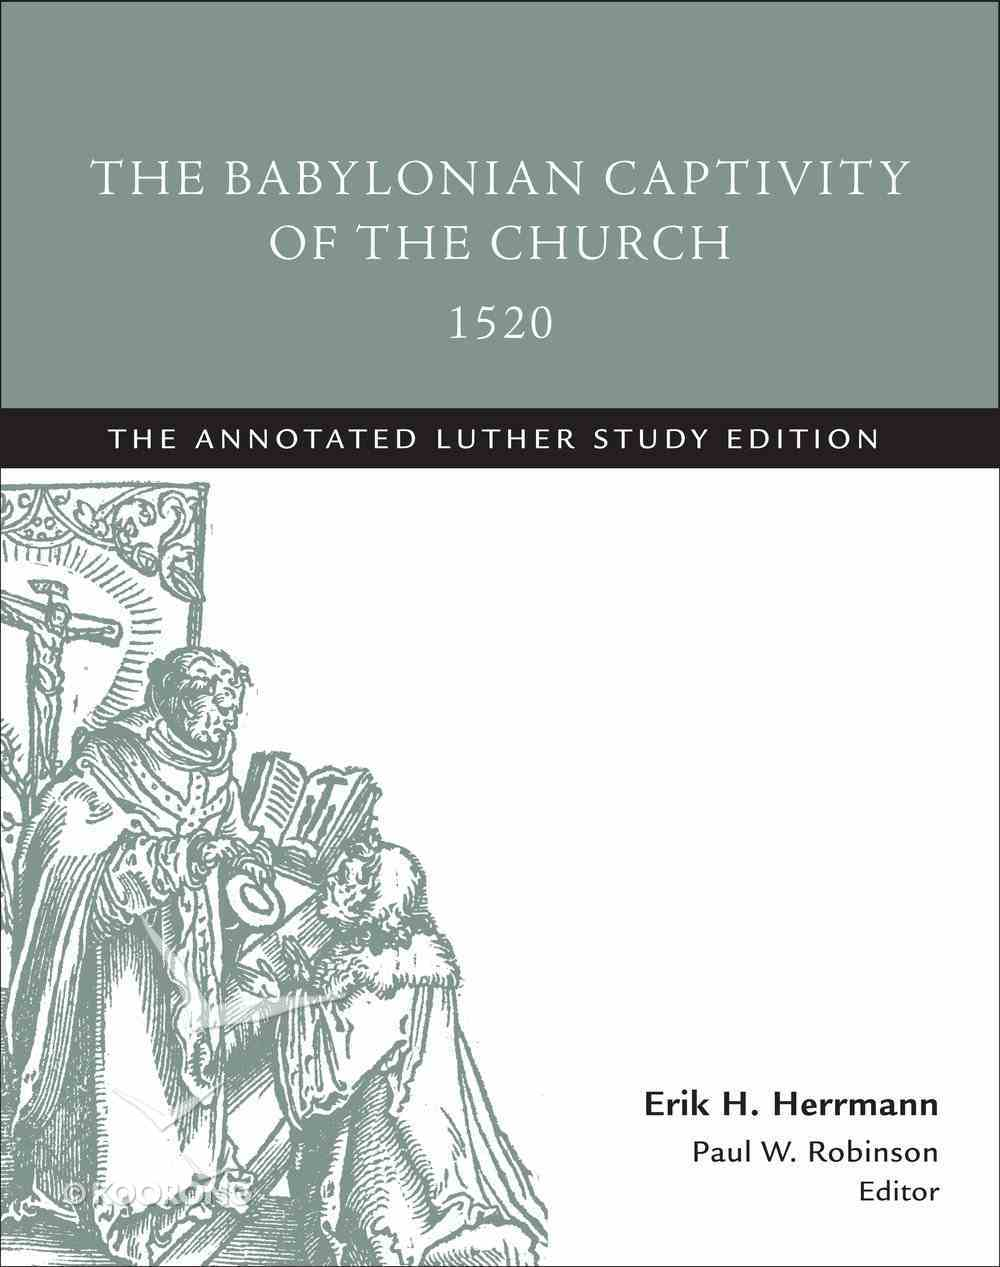 The Babylonian Captivity of the Church 1520 (Study Edition) (The Annotated Luther Series) Paperback